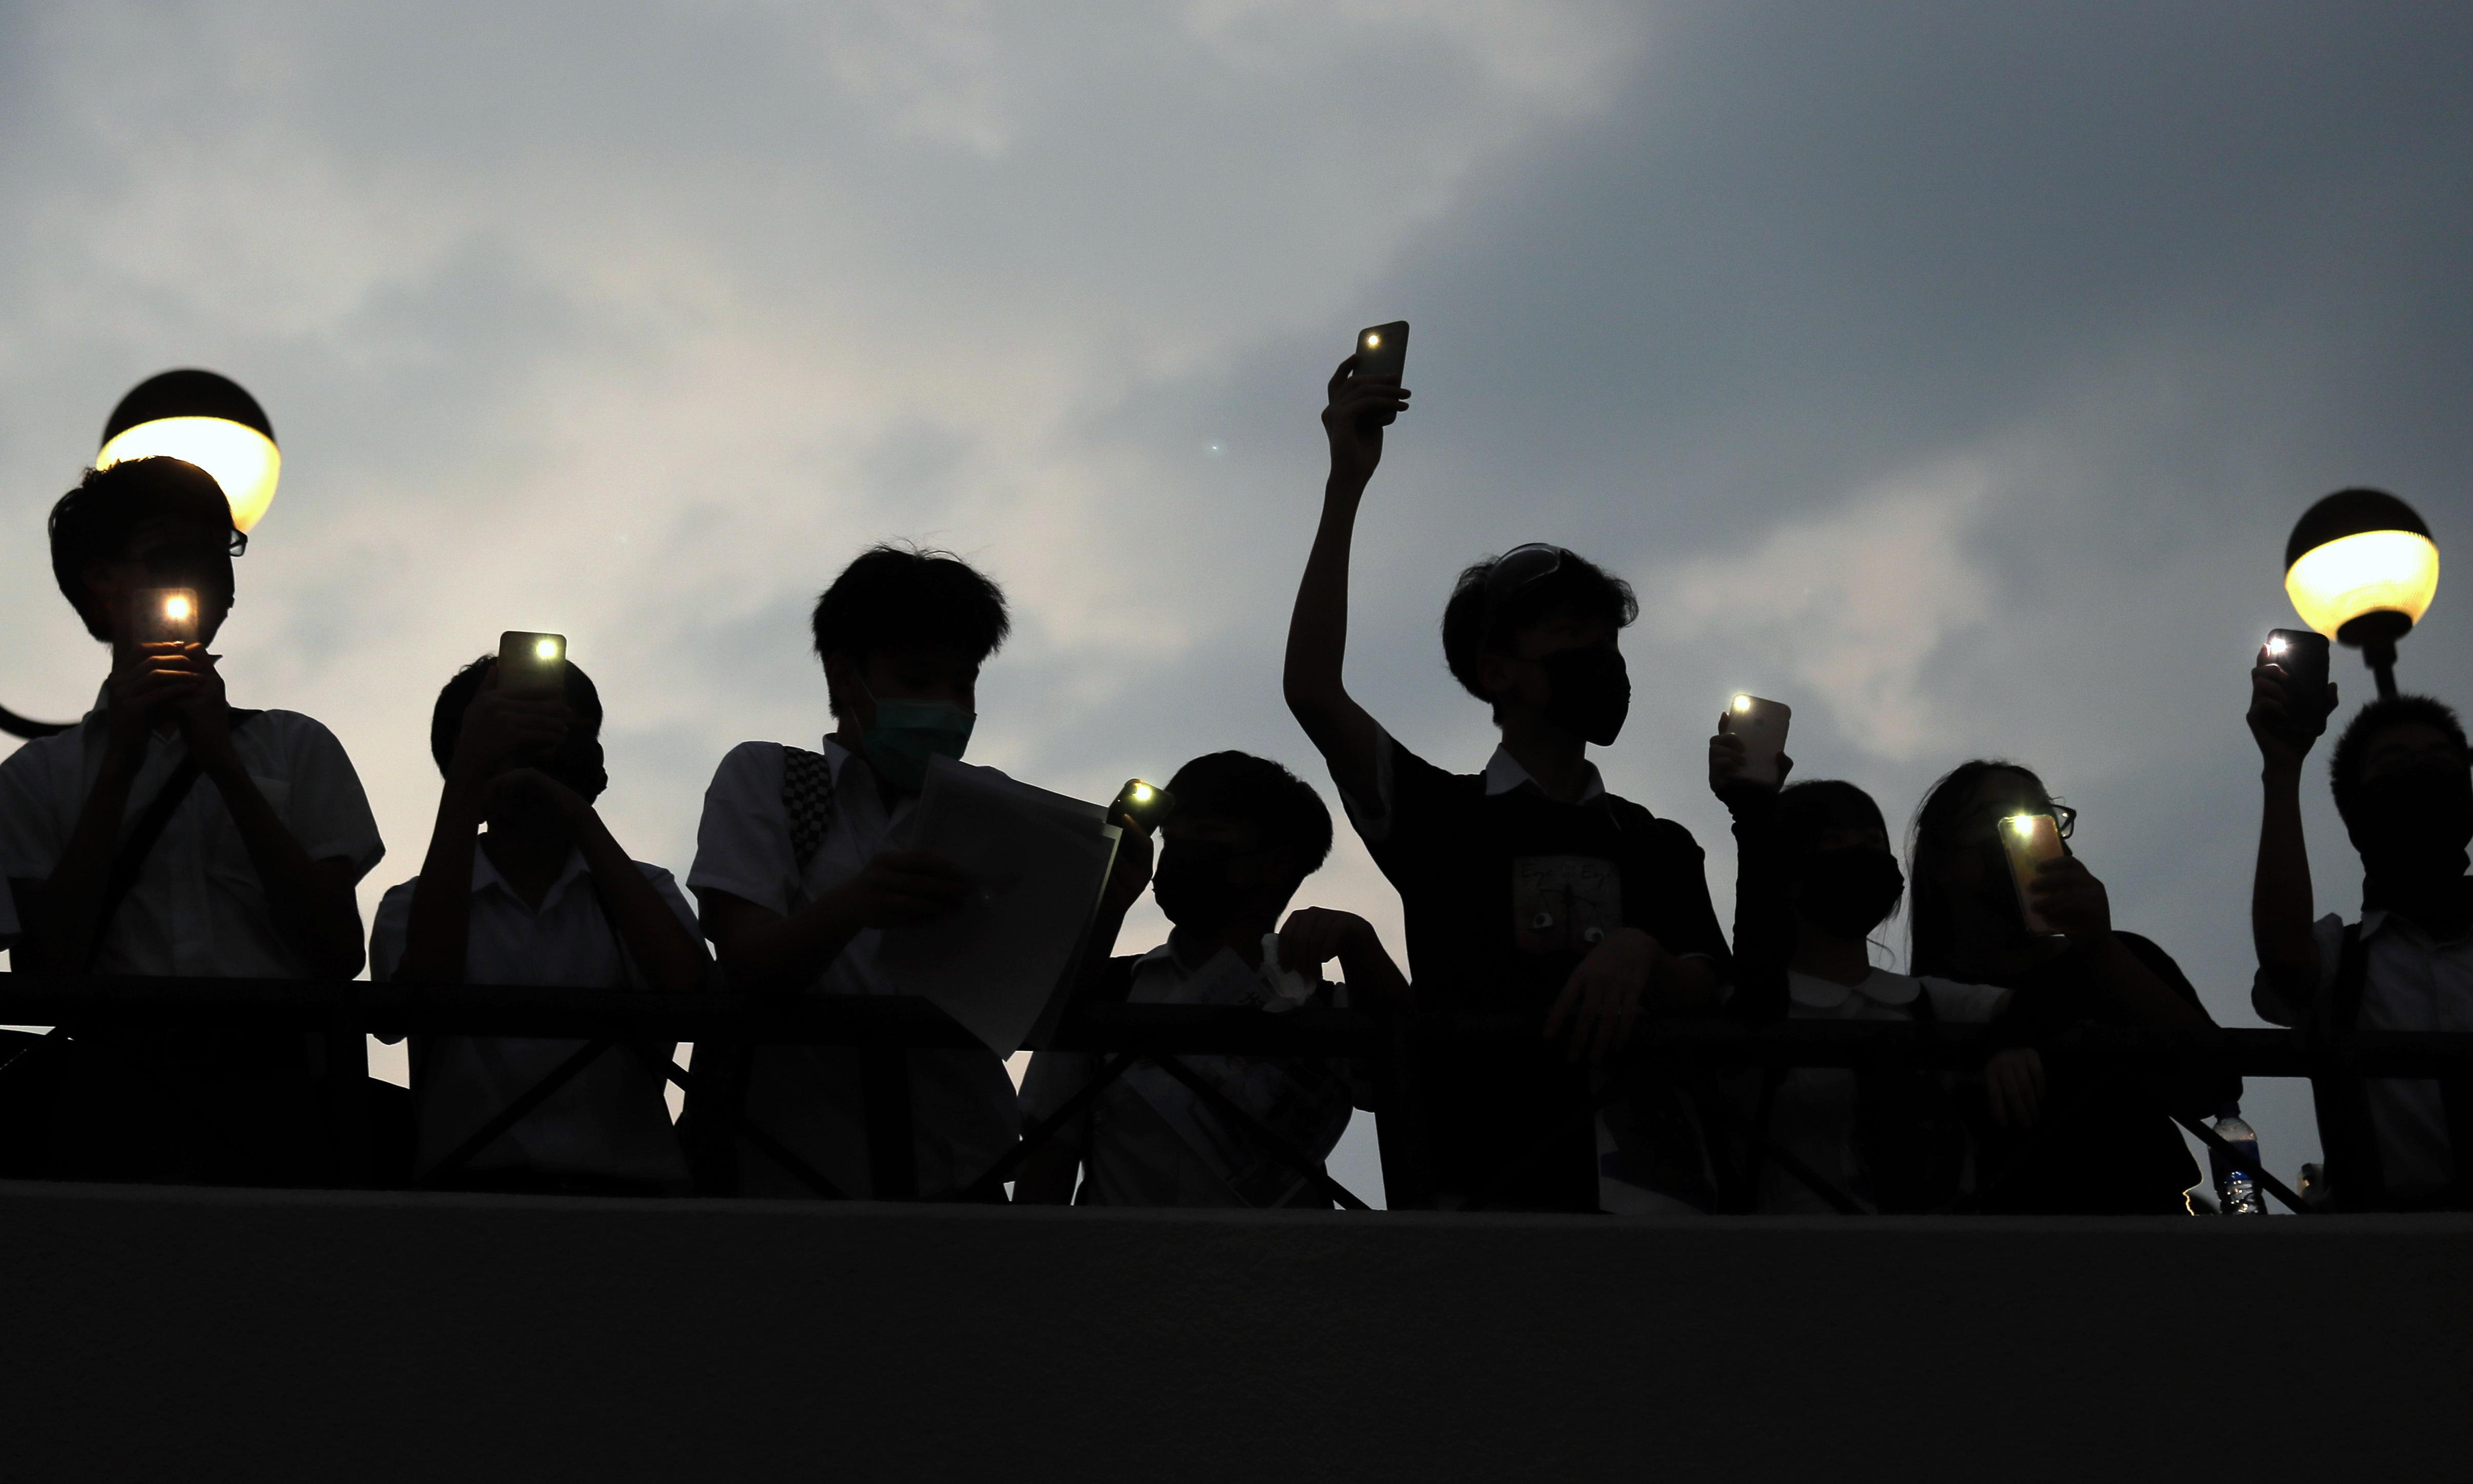 Hong Kong protests: tech war opens up with doxxing of protesters and police